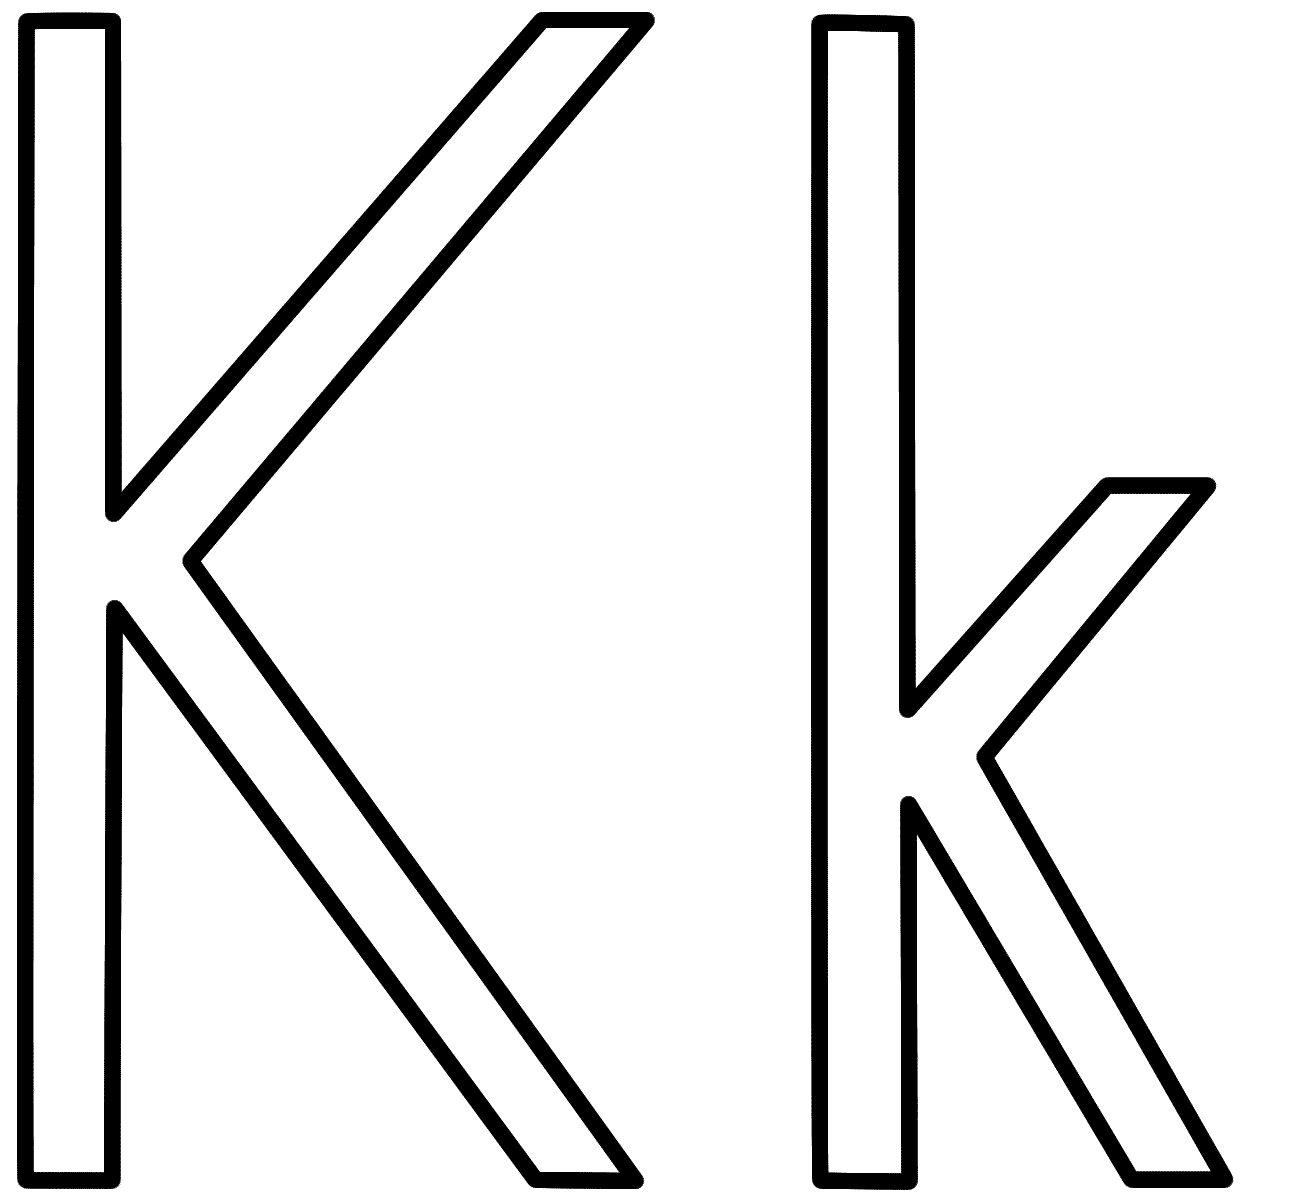 letter k coloring page letter k drawing at getdrawings free download coloring k letter page